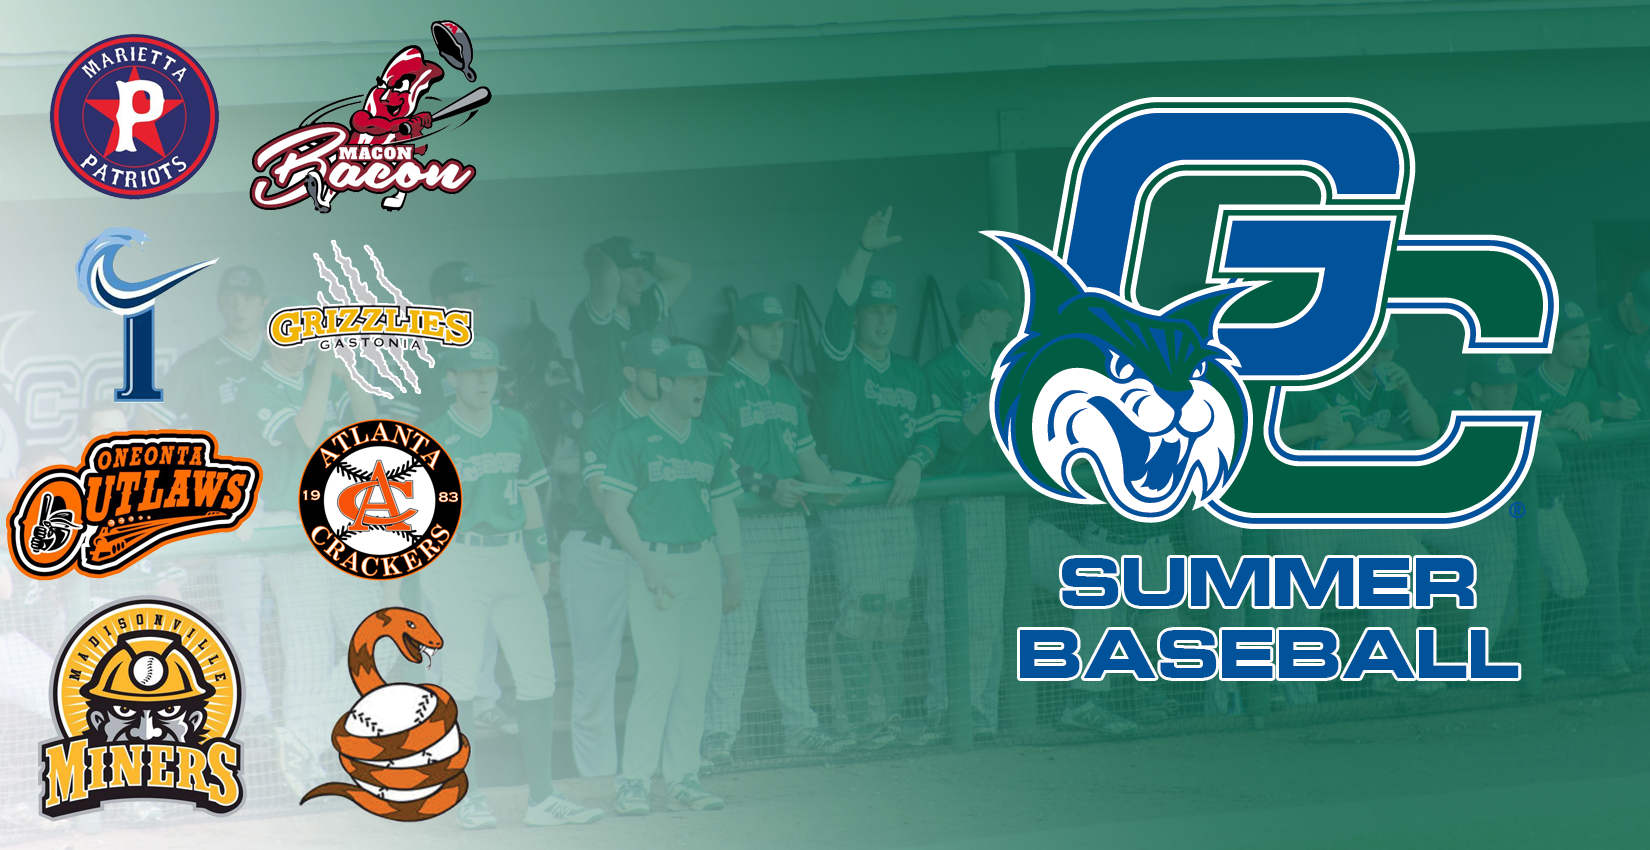 Logos from the teams the Bobcats played for this summer